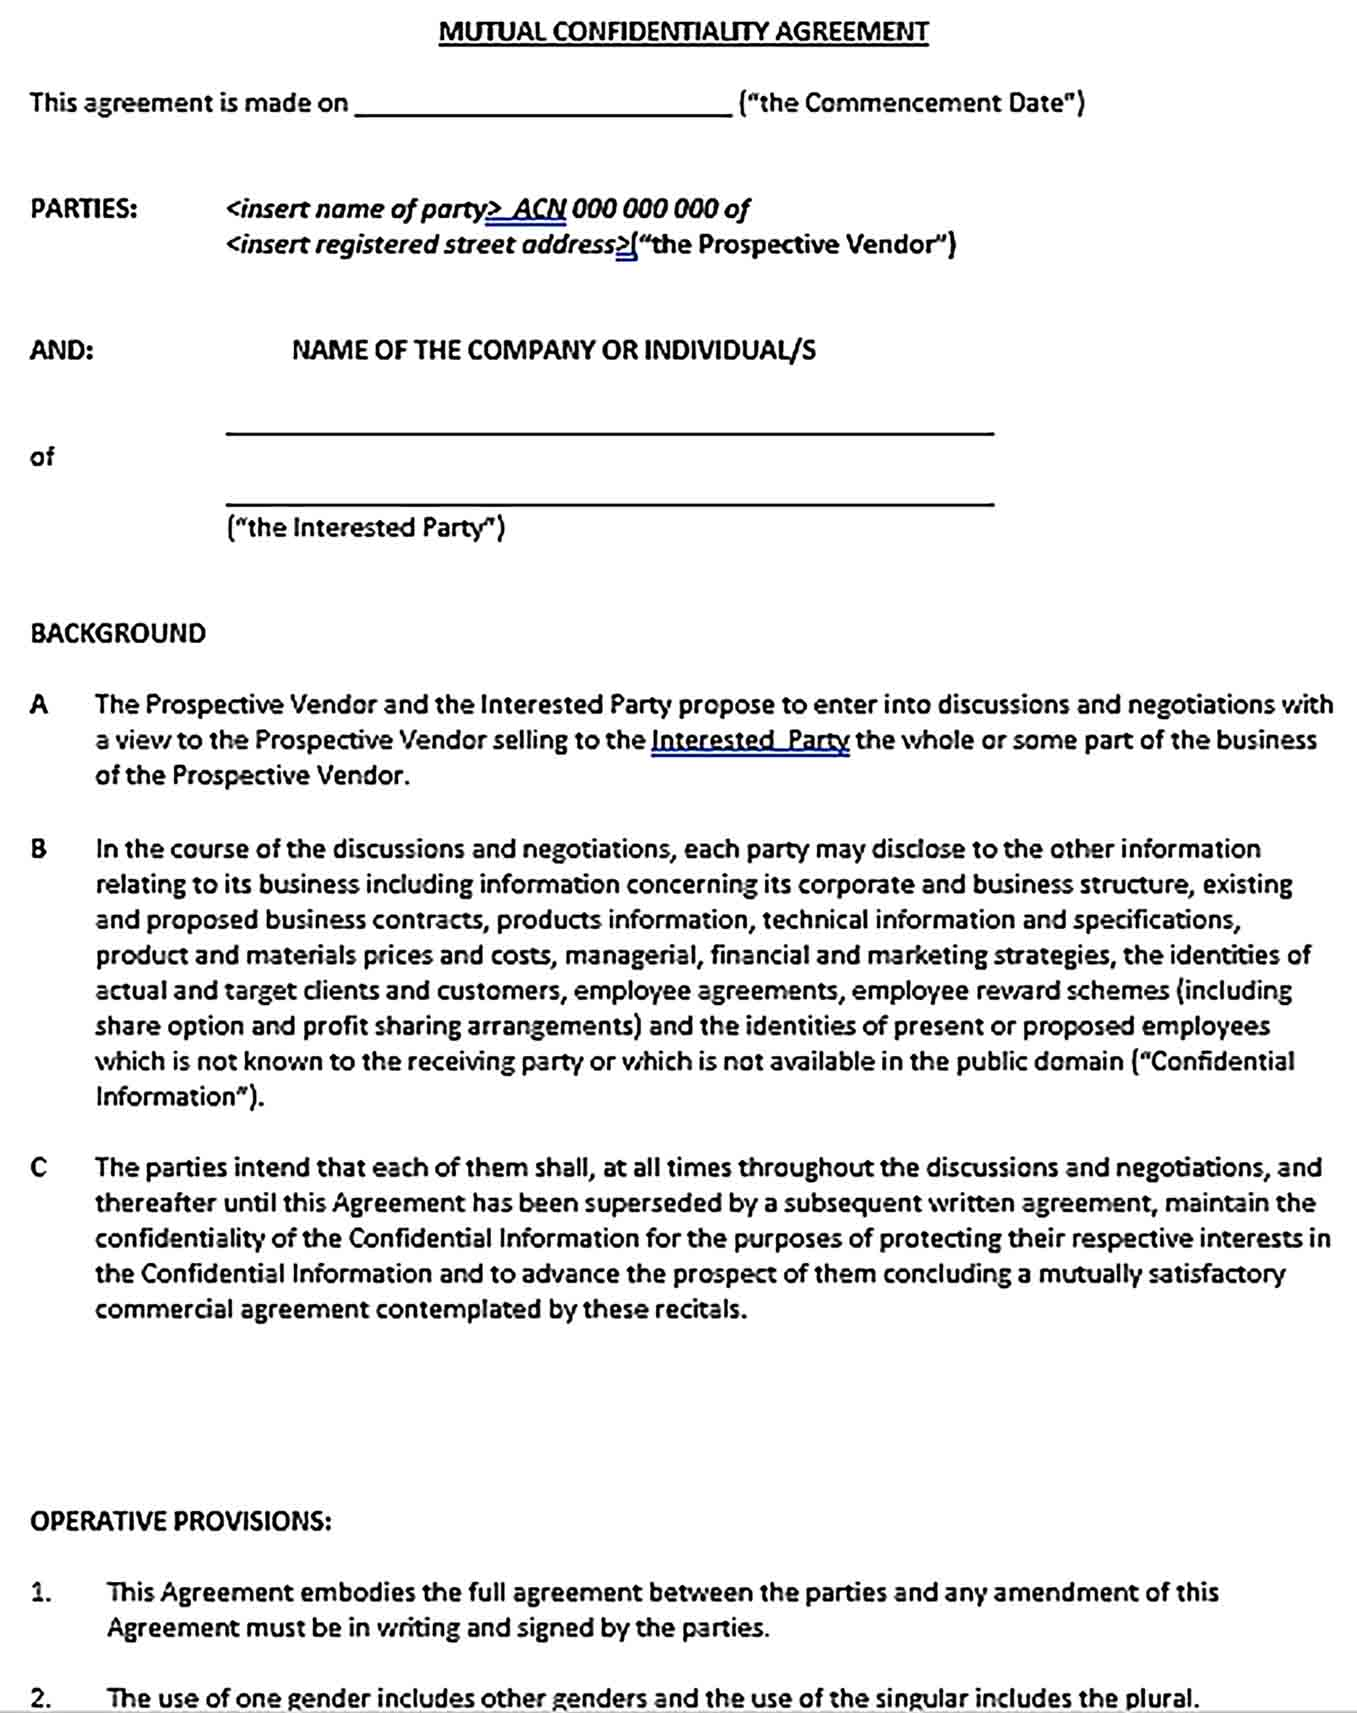 Sample Mutual Basic Confidentiality Agreement